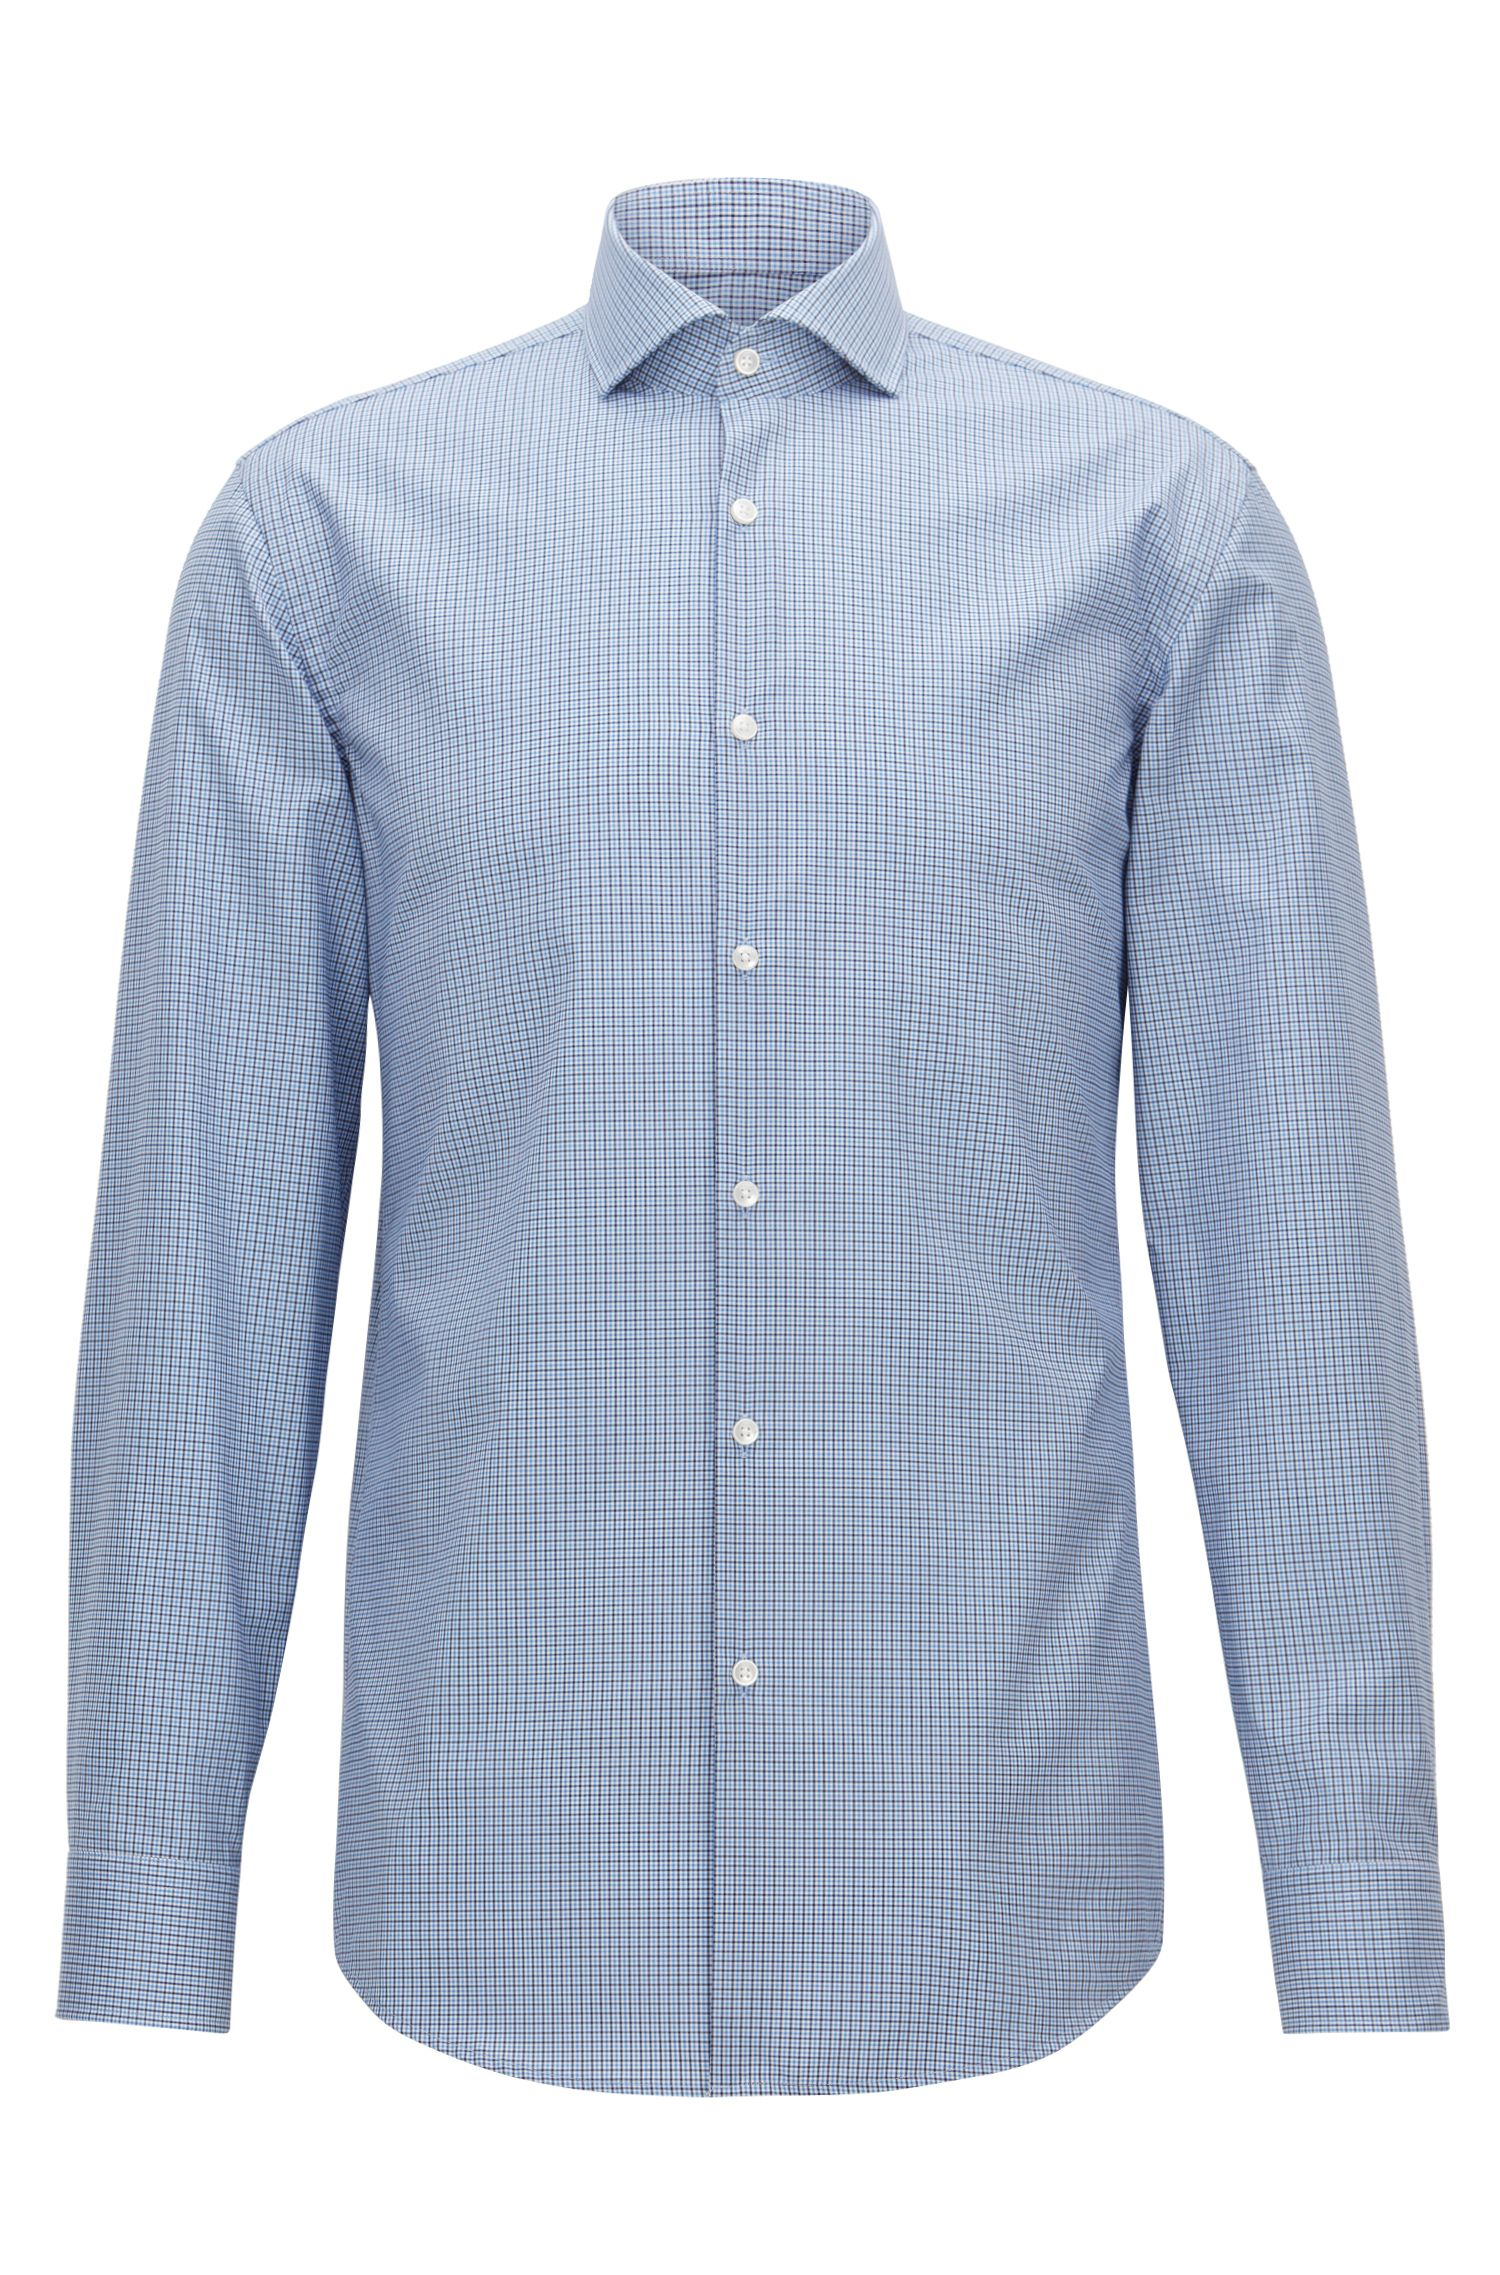 Slim-fit easy-iron shirt in Vichy check cotton